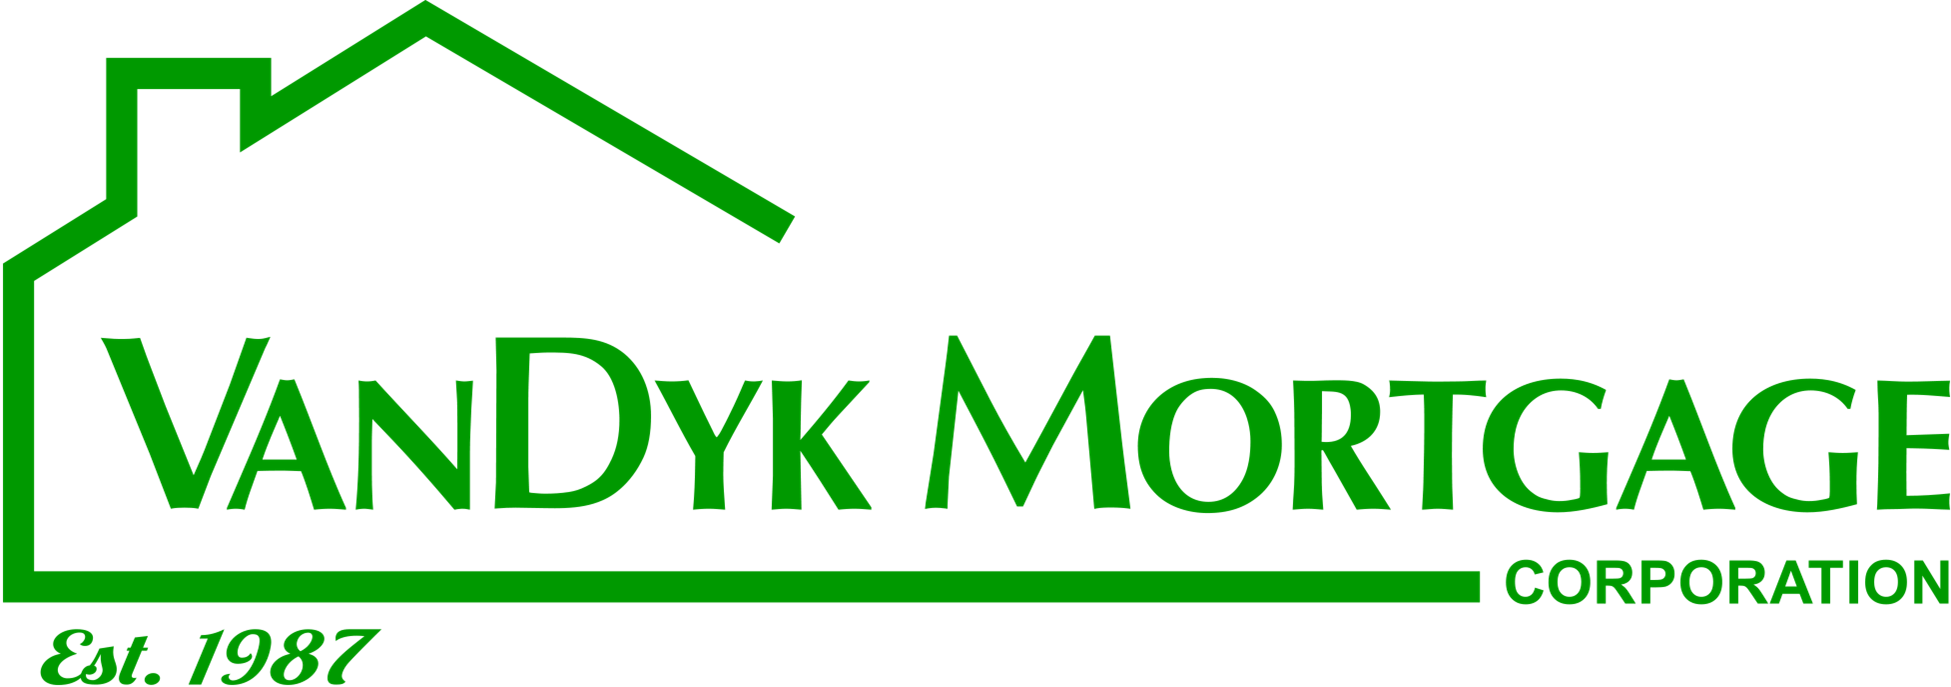 VanDyk Mortgage Website